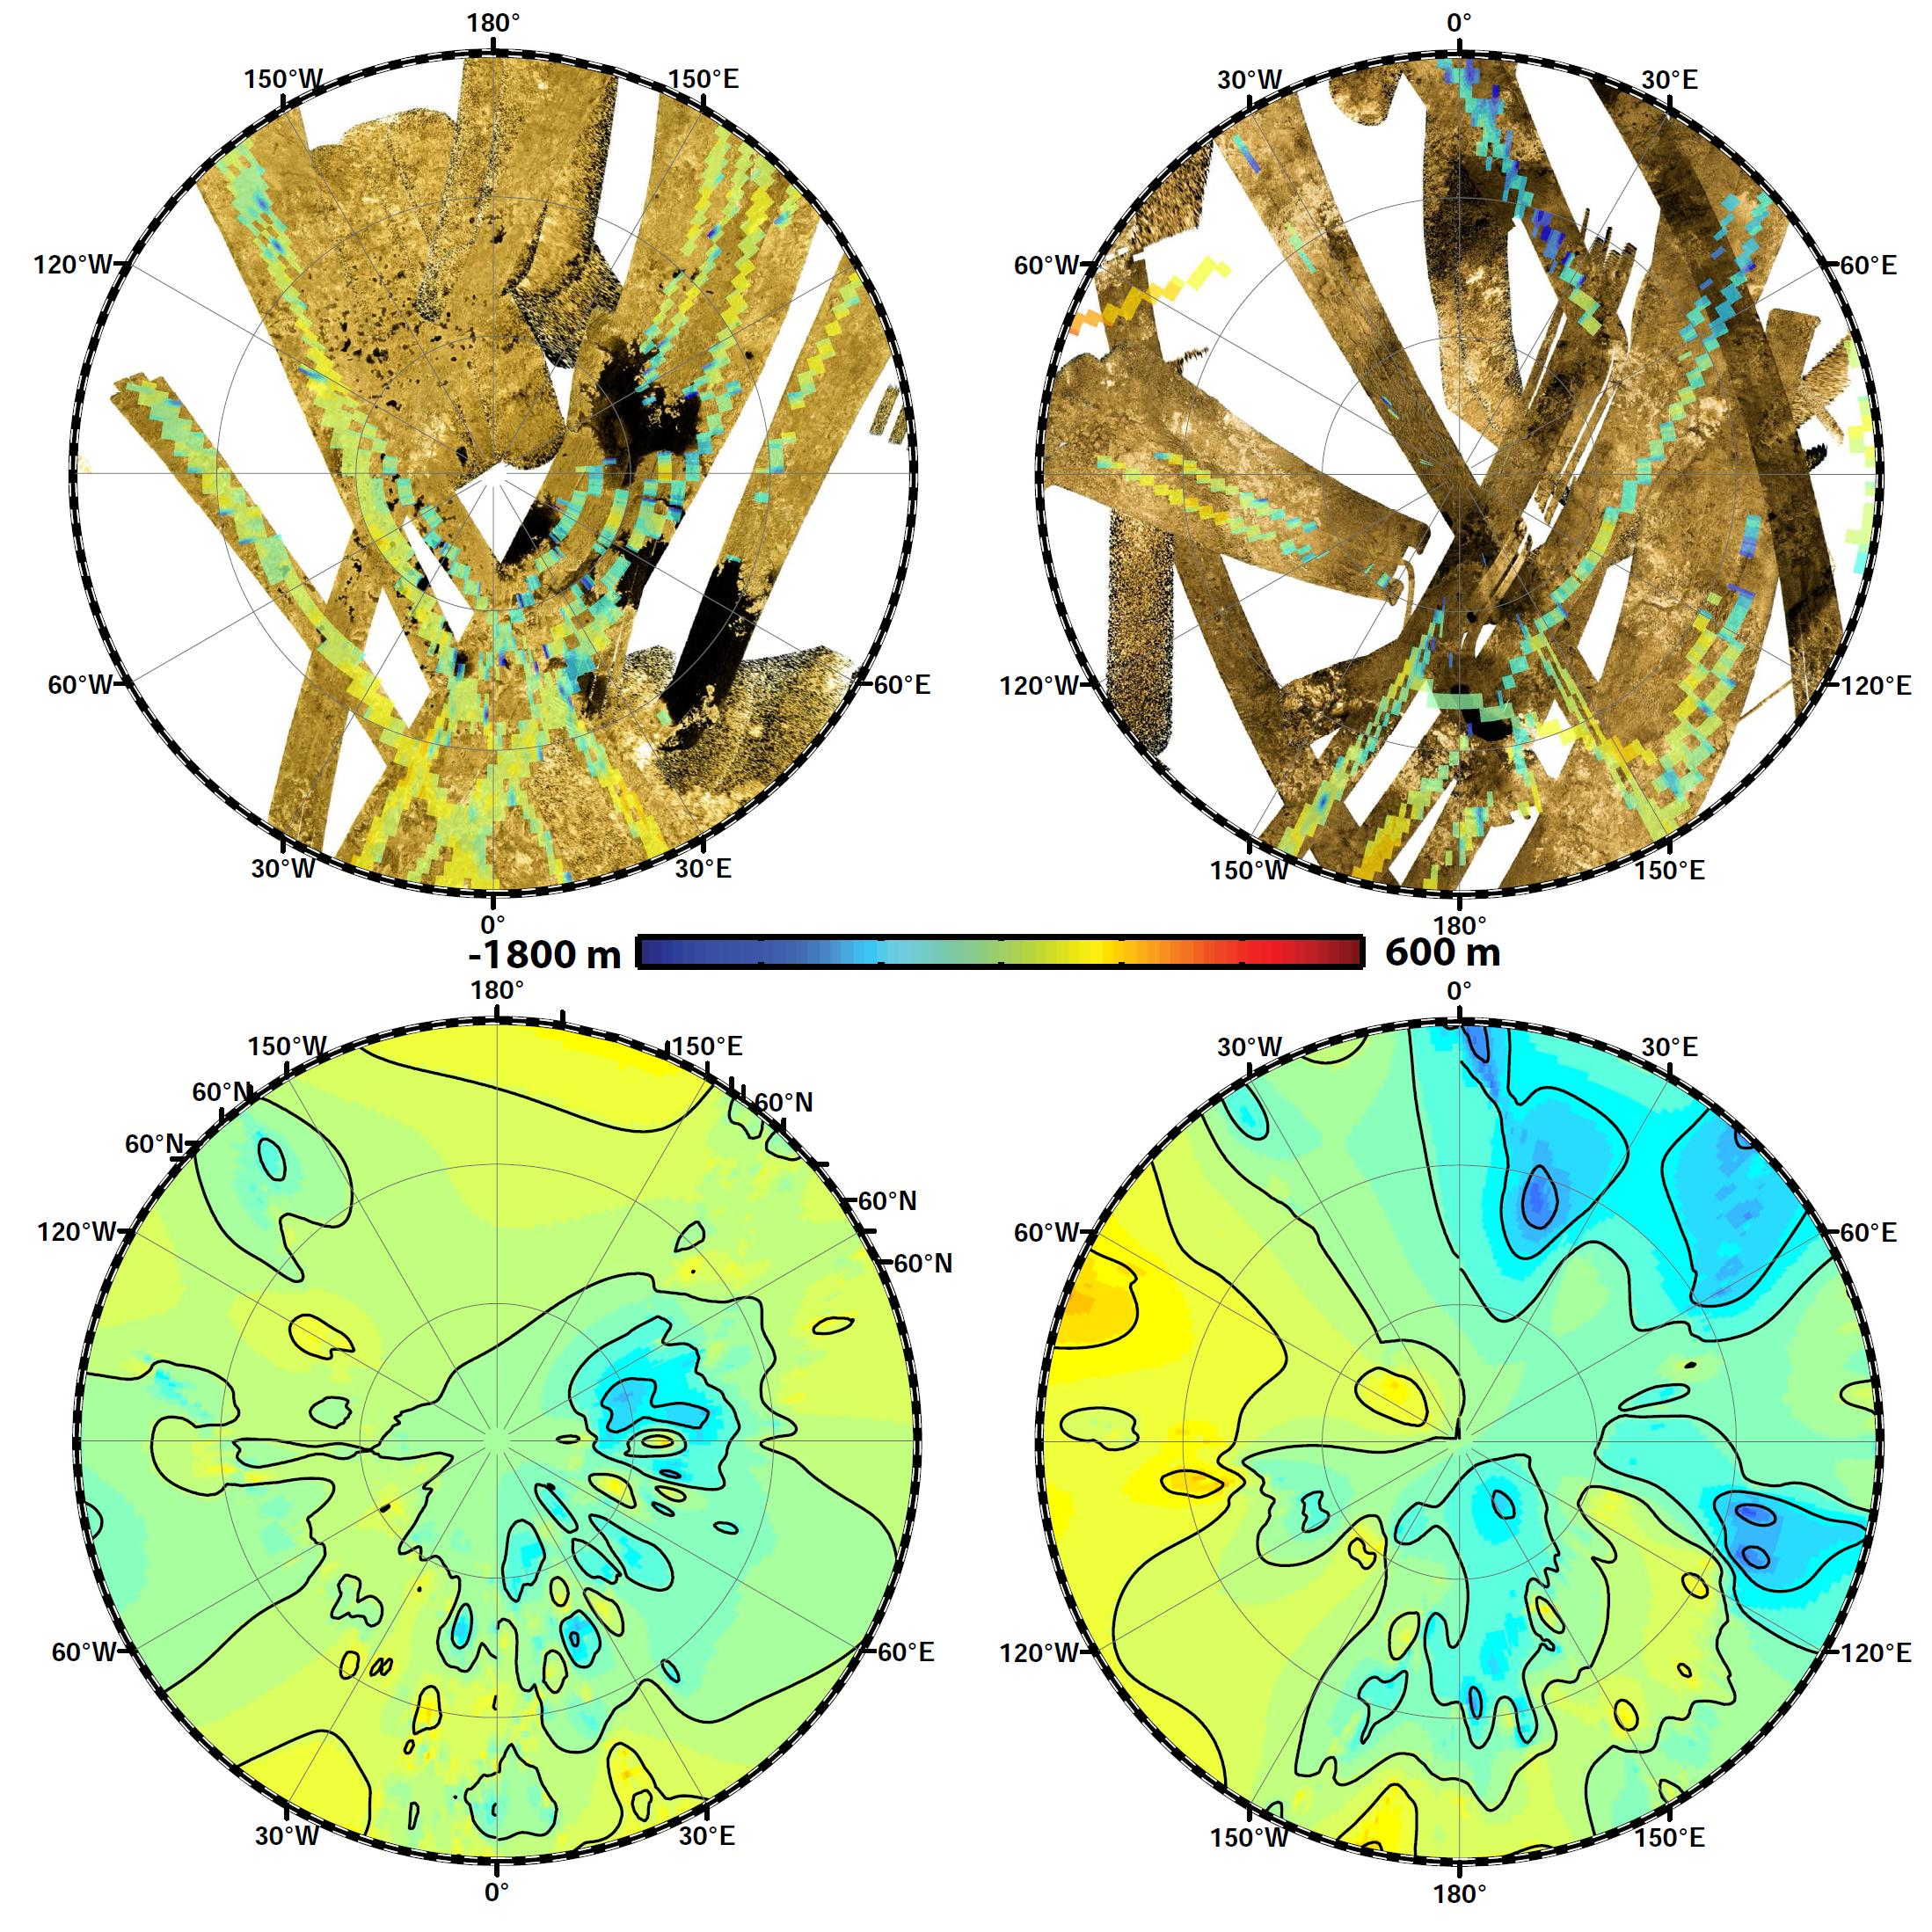 Shapes First Global Topographic Map Of Titan - Global topographic map